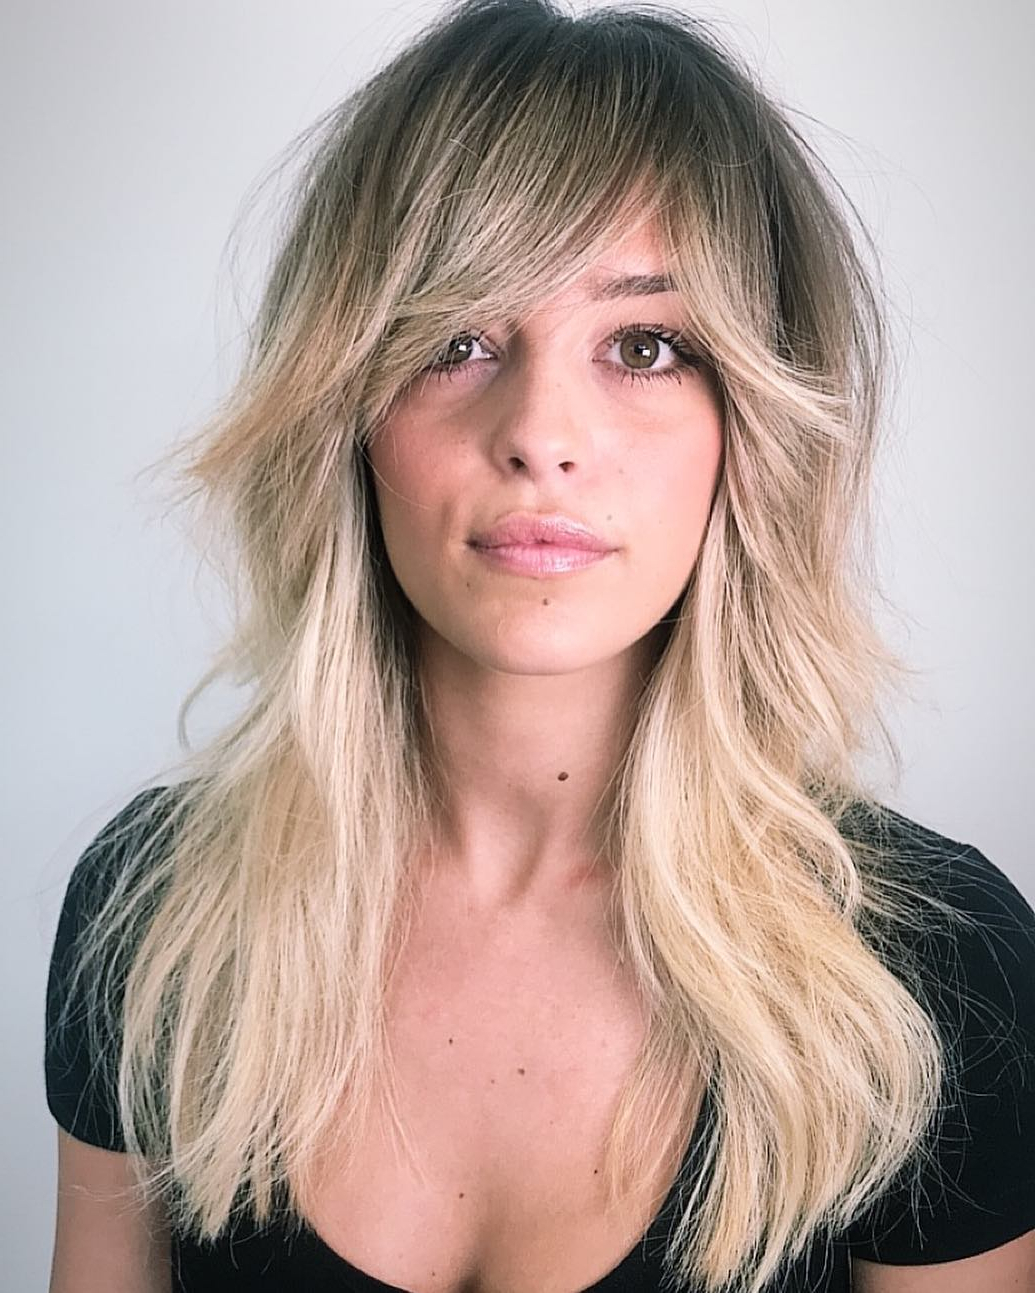 The Most Instagrammable Hairstyles With Bangs In 2019 Inside Shaggy Haircuts With Bangs And Longer Layers (View 20 of 20)